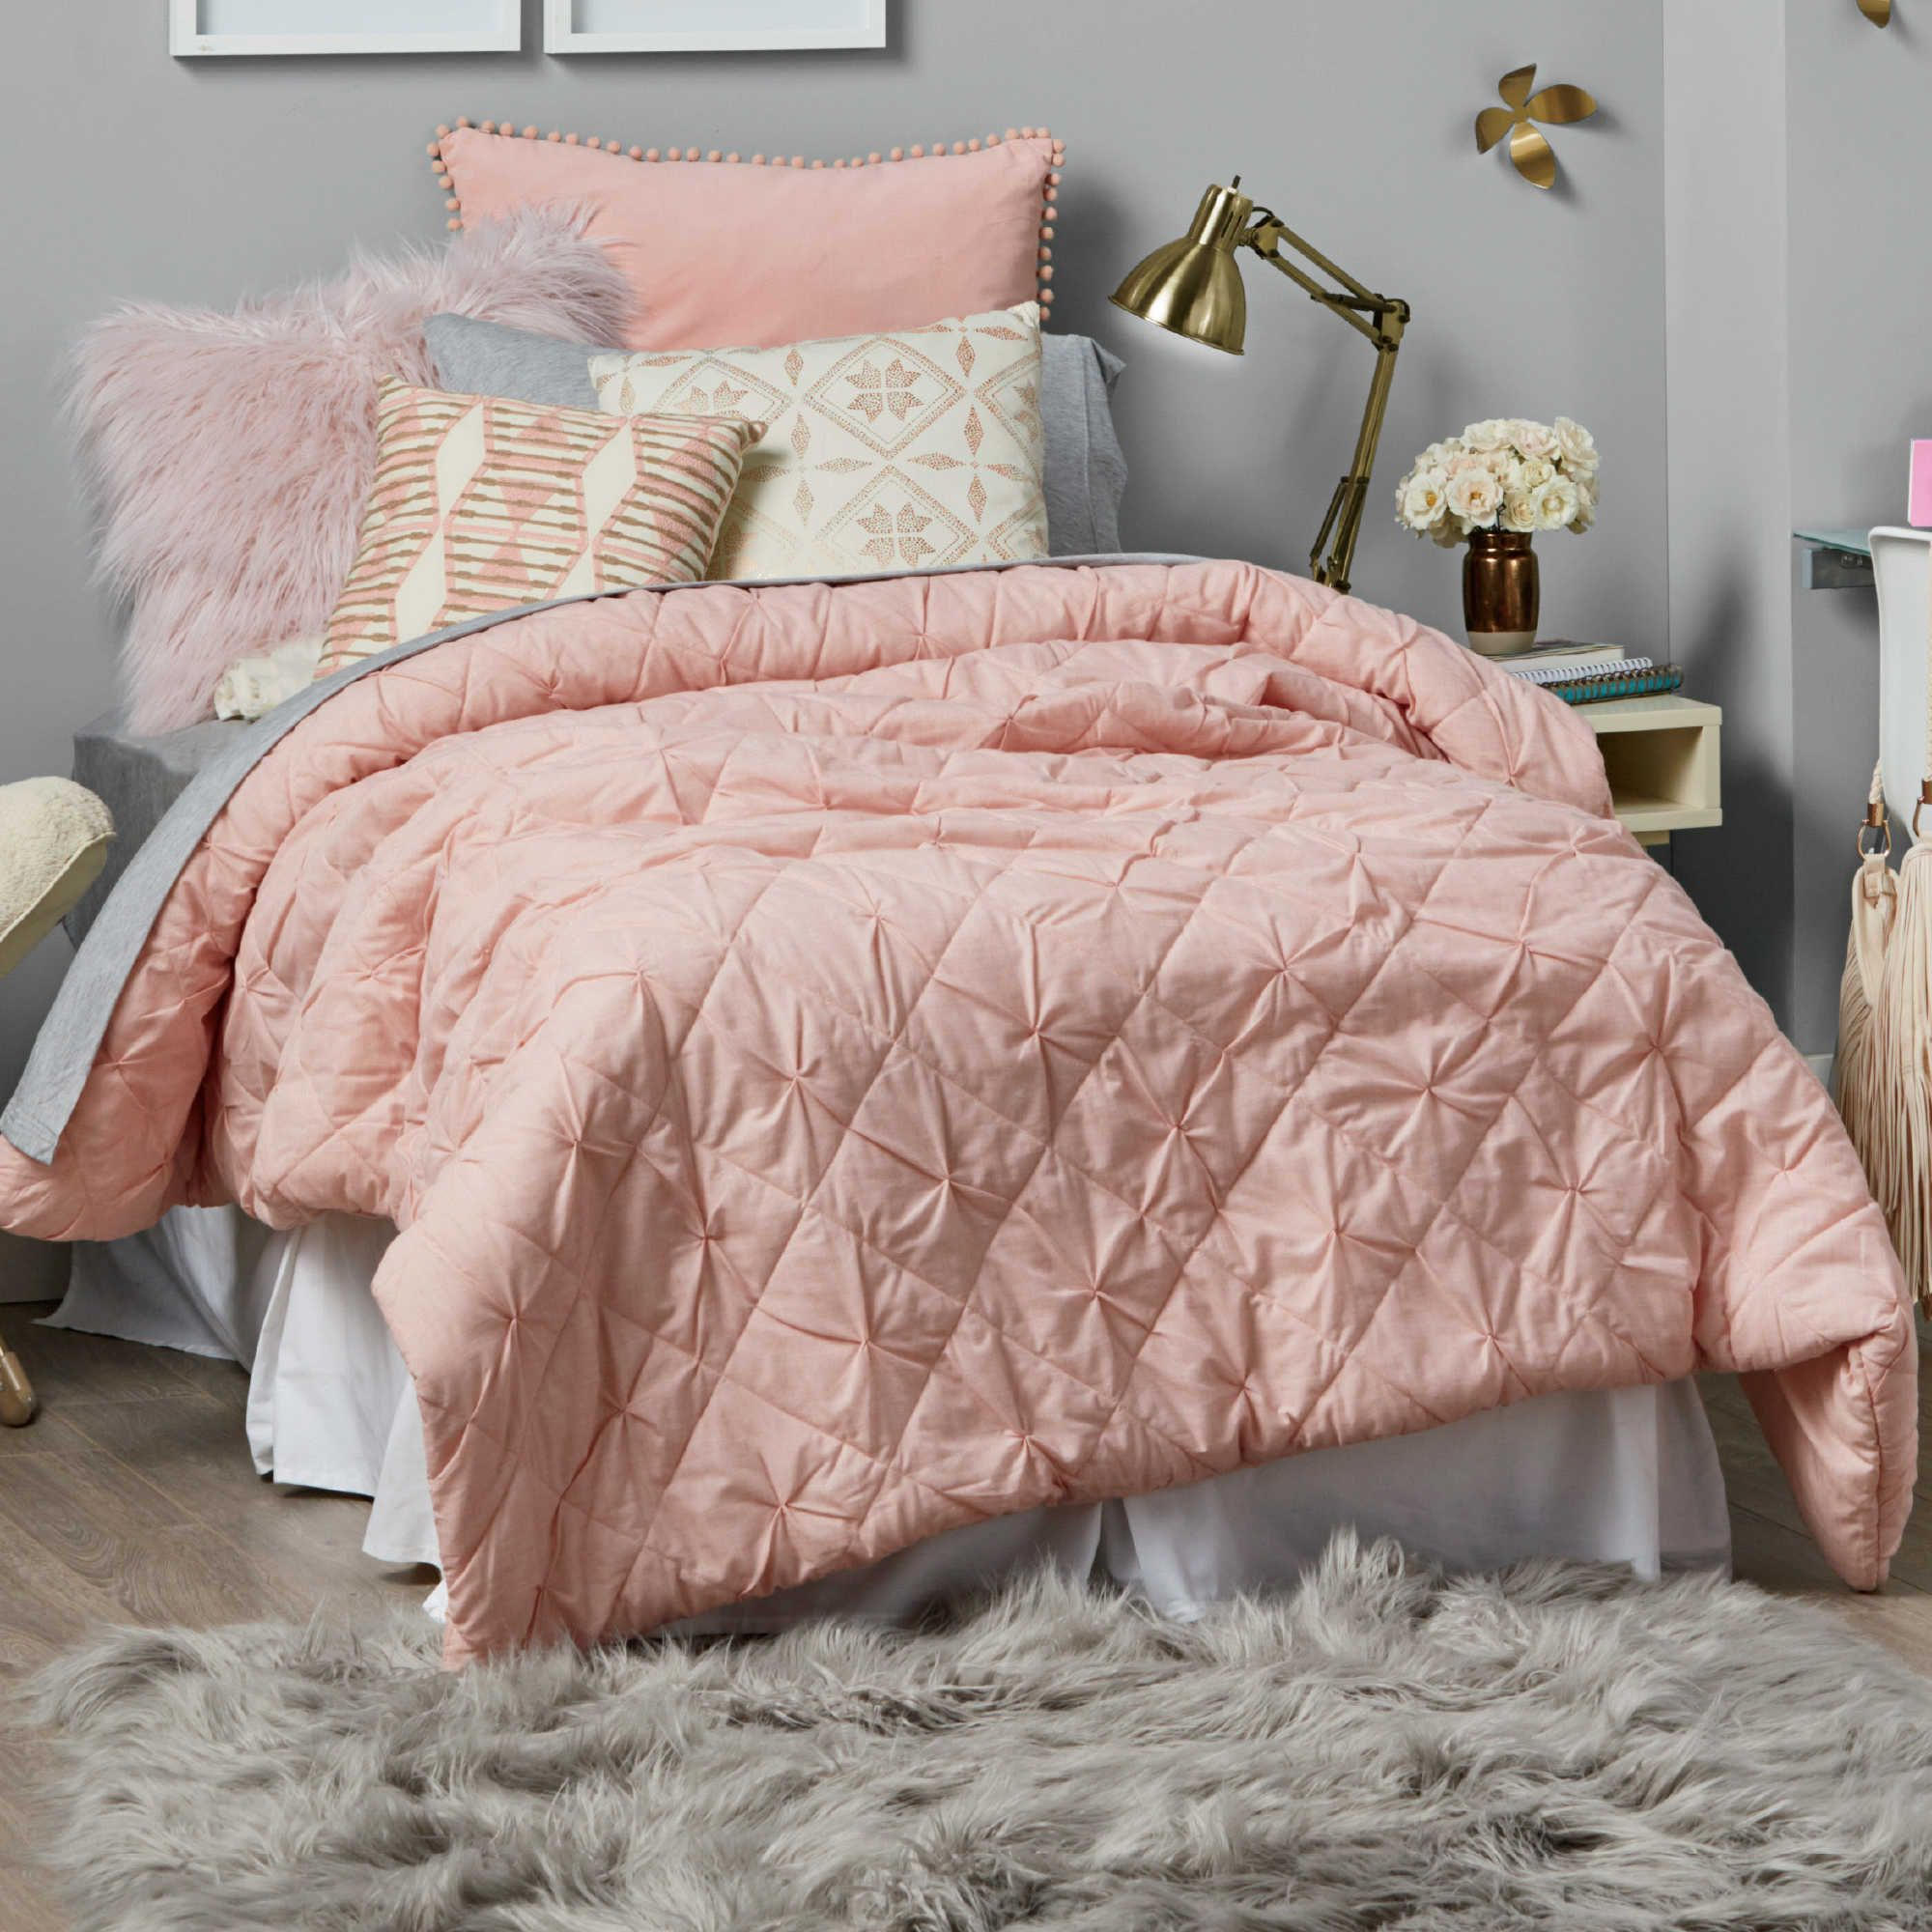 Another Bed Bath Beyond Comforter Comes In This Pink Or Vanilla